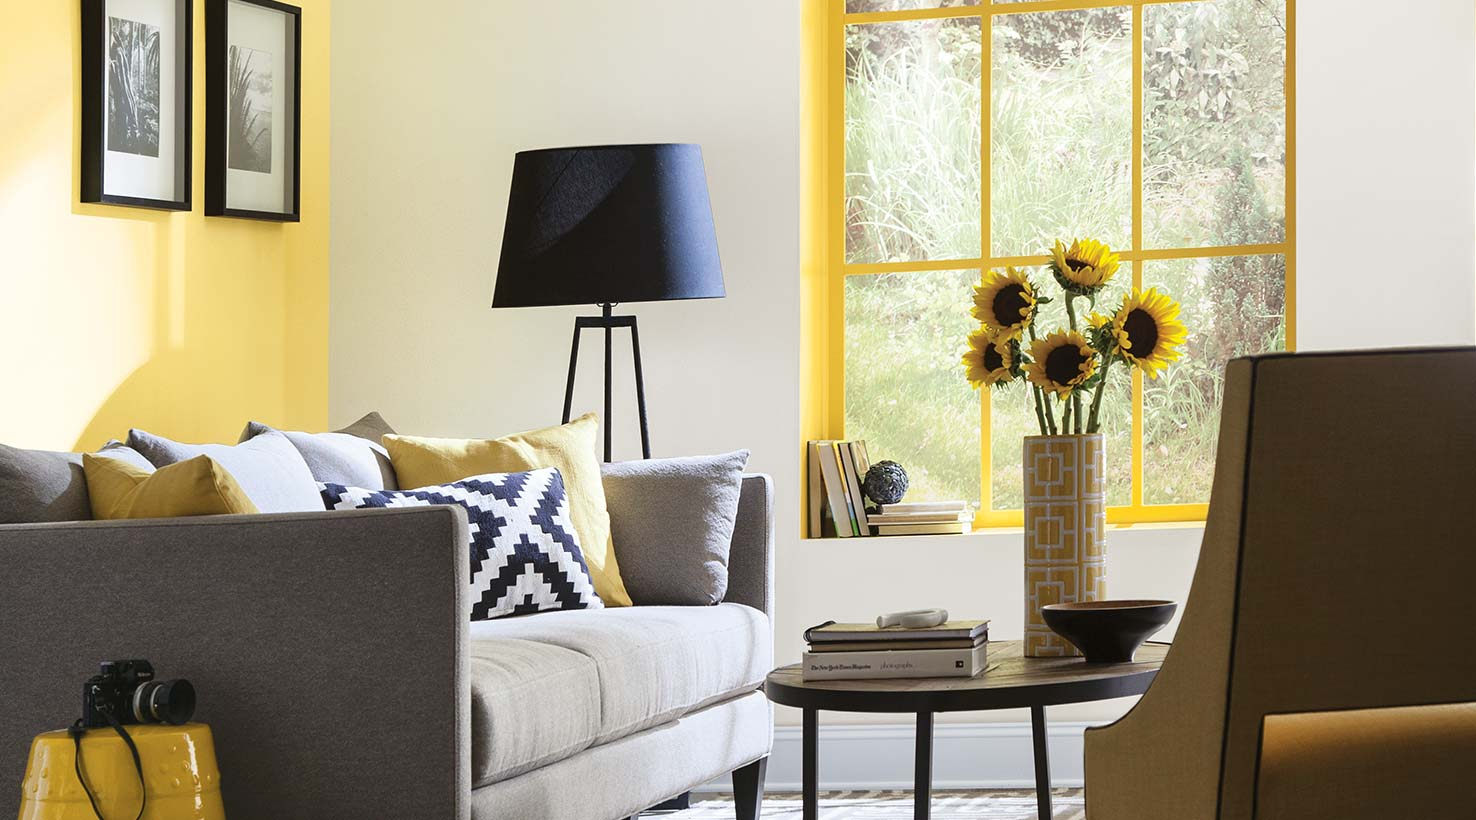 Living room paint color ideas inspiration gallery for Living room yellow color